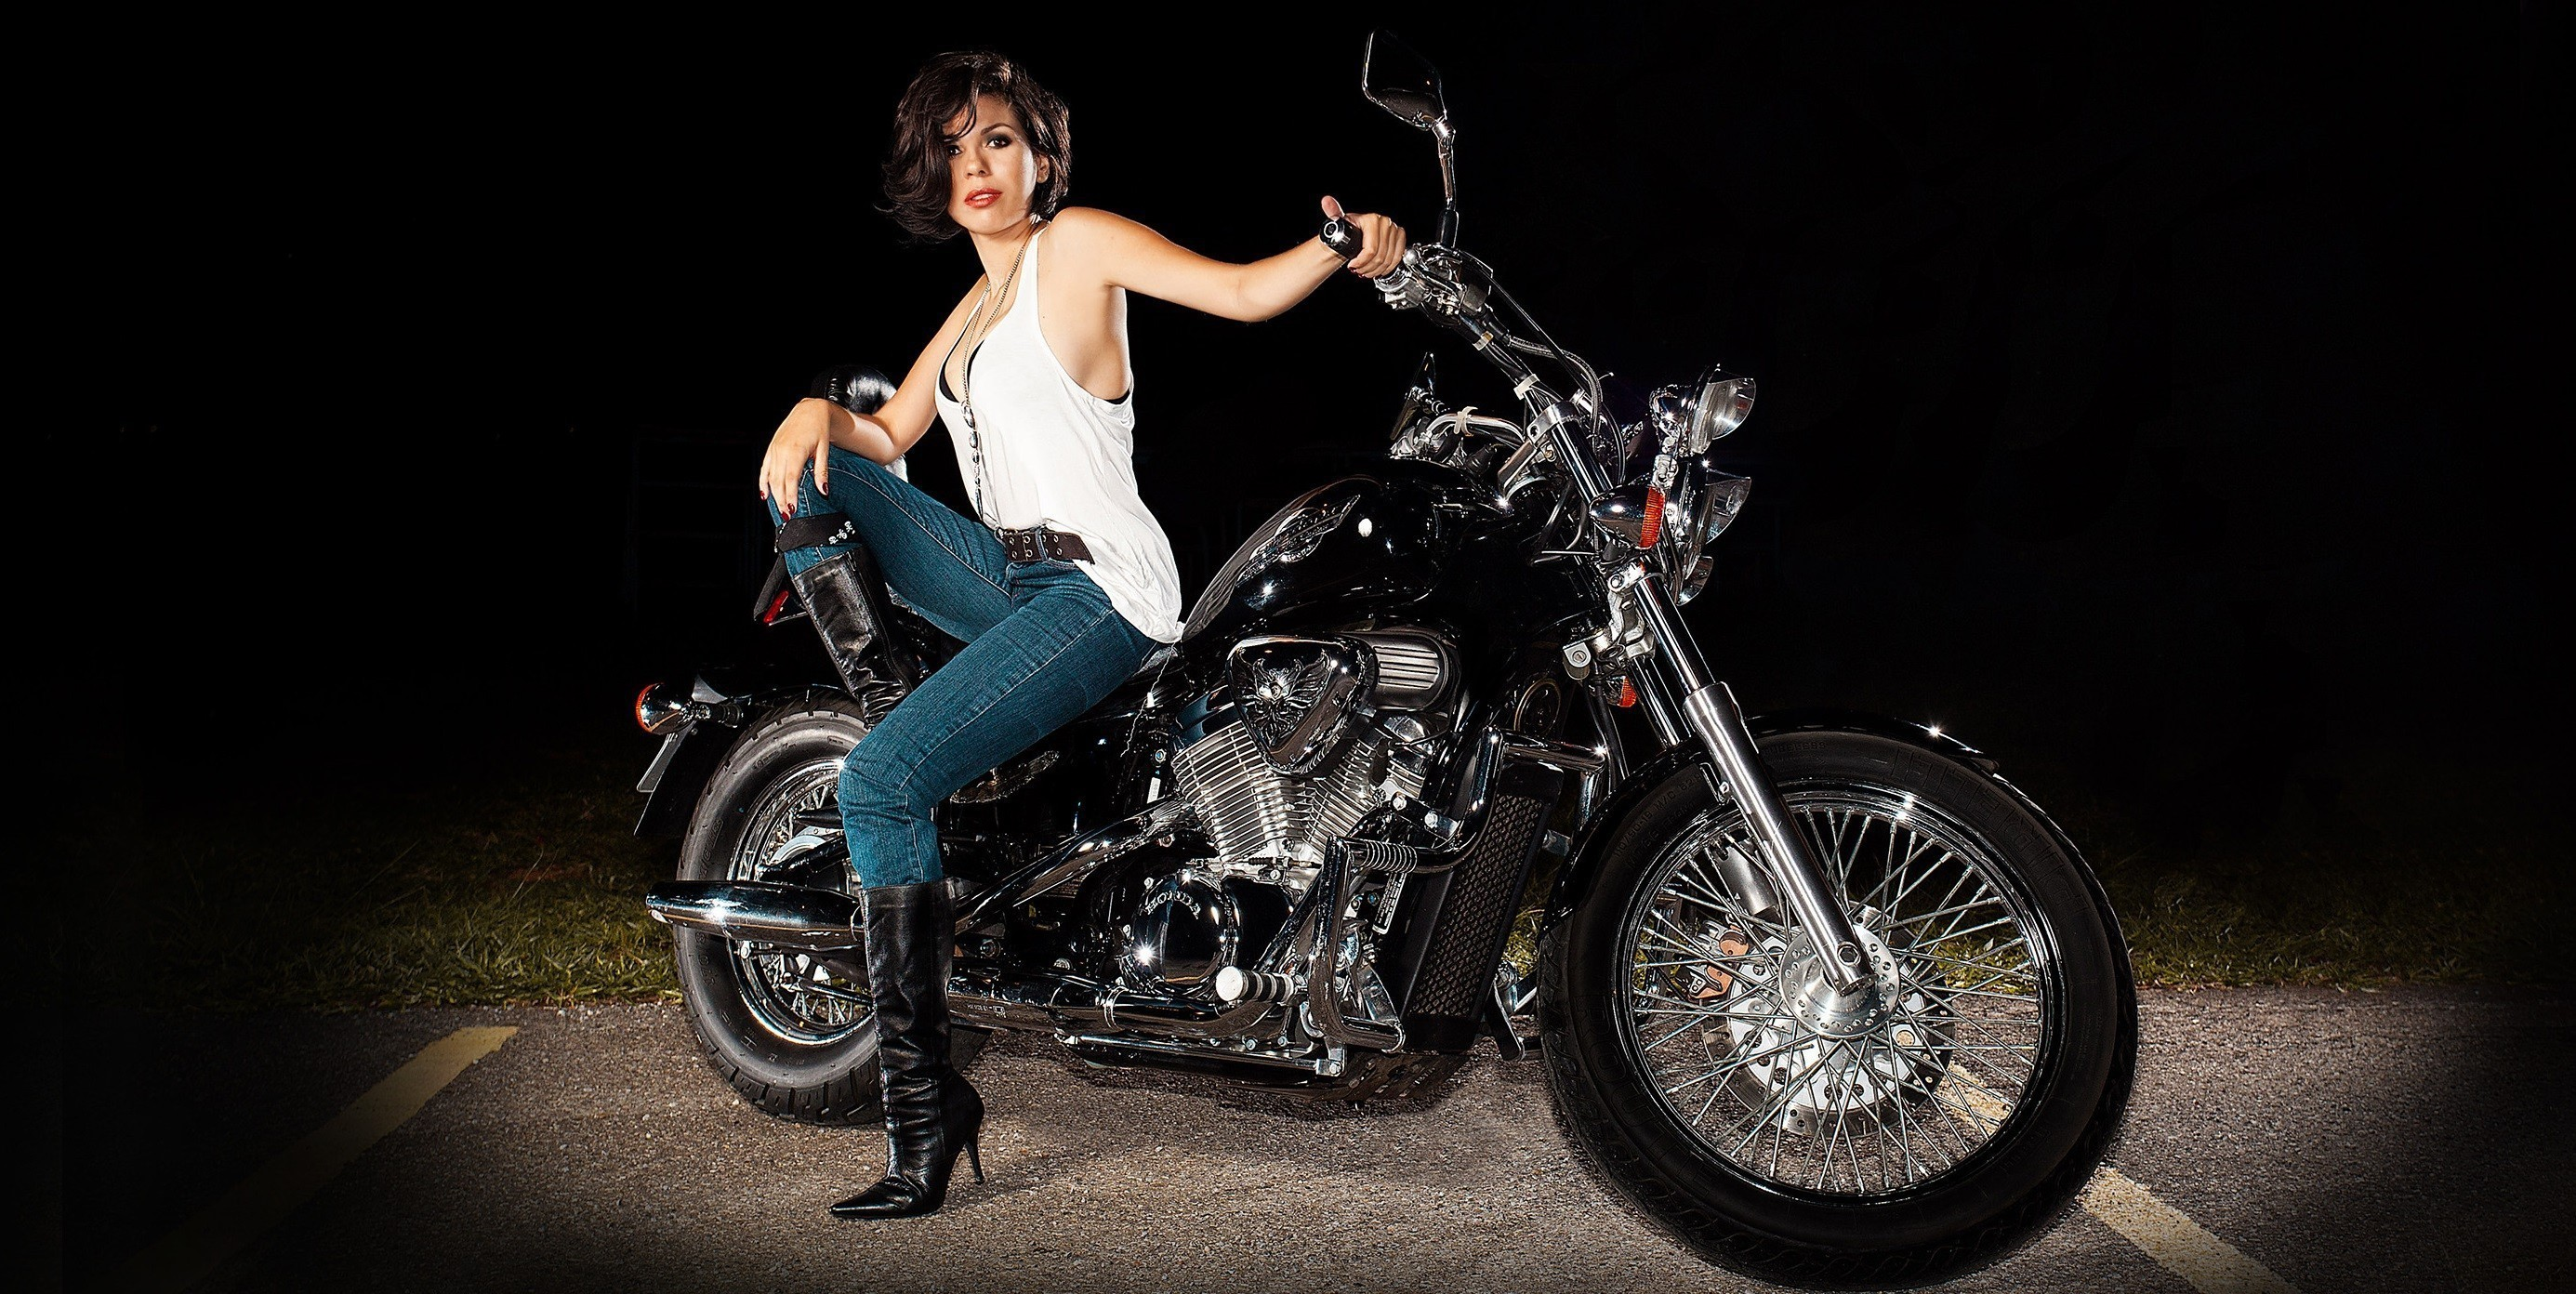 Girl model sitting on a motorcycle